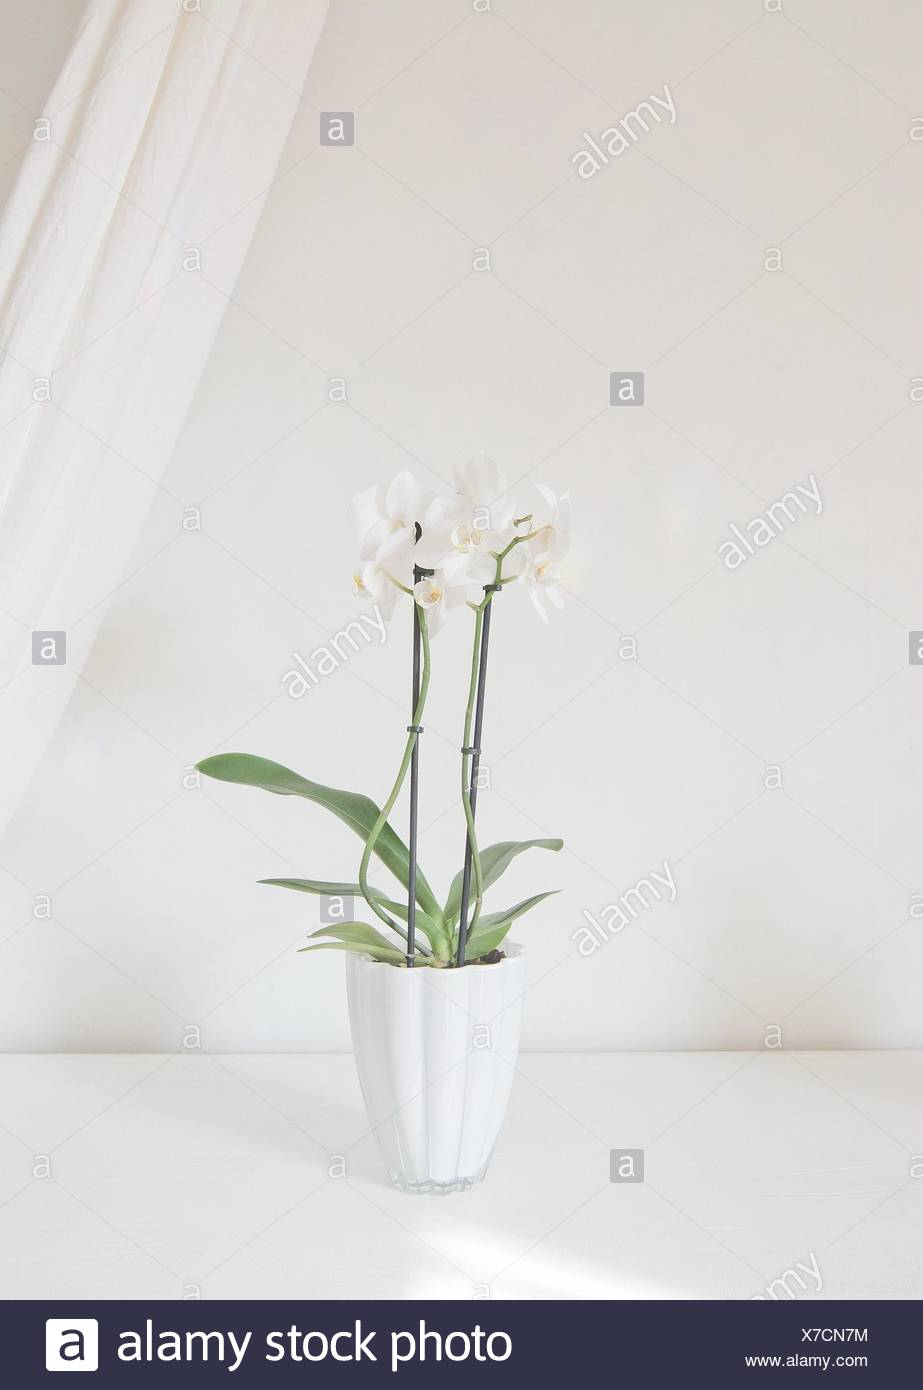 White orchid flowers in pot with white linen drape against white wall. - Stock Image